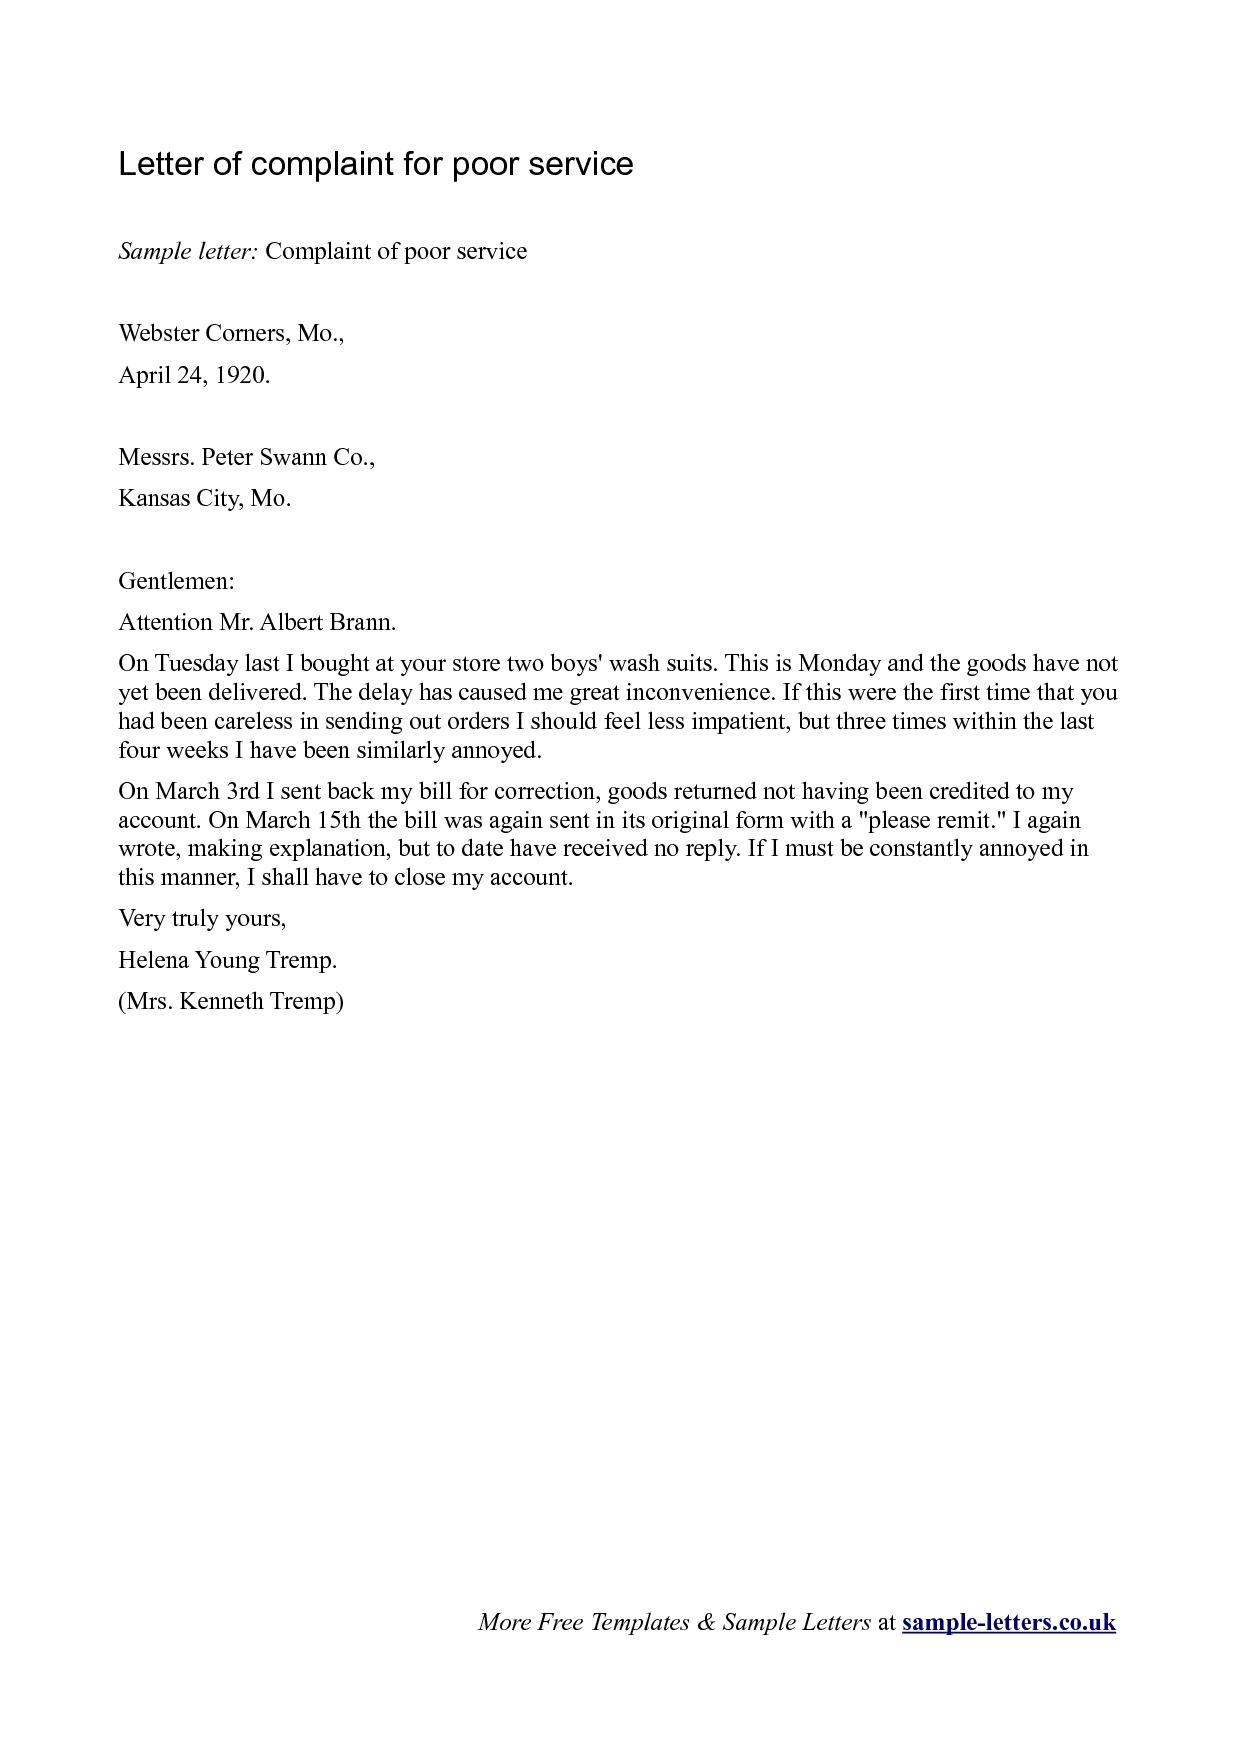 complaints letter for poor service Boat.jeremyeaton.co